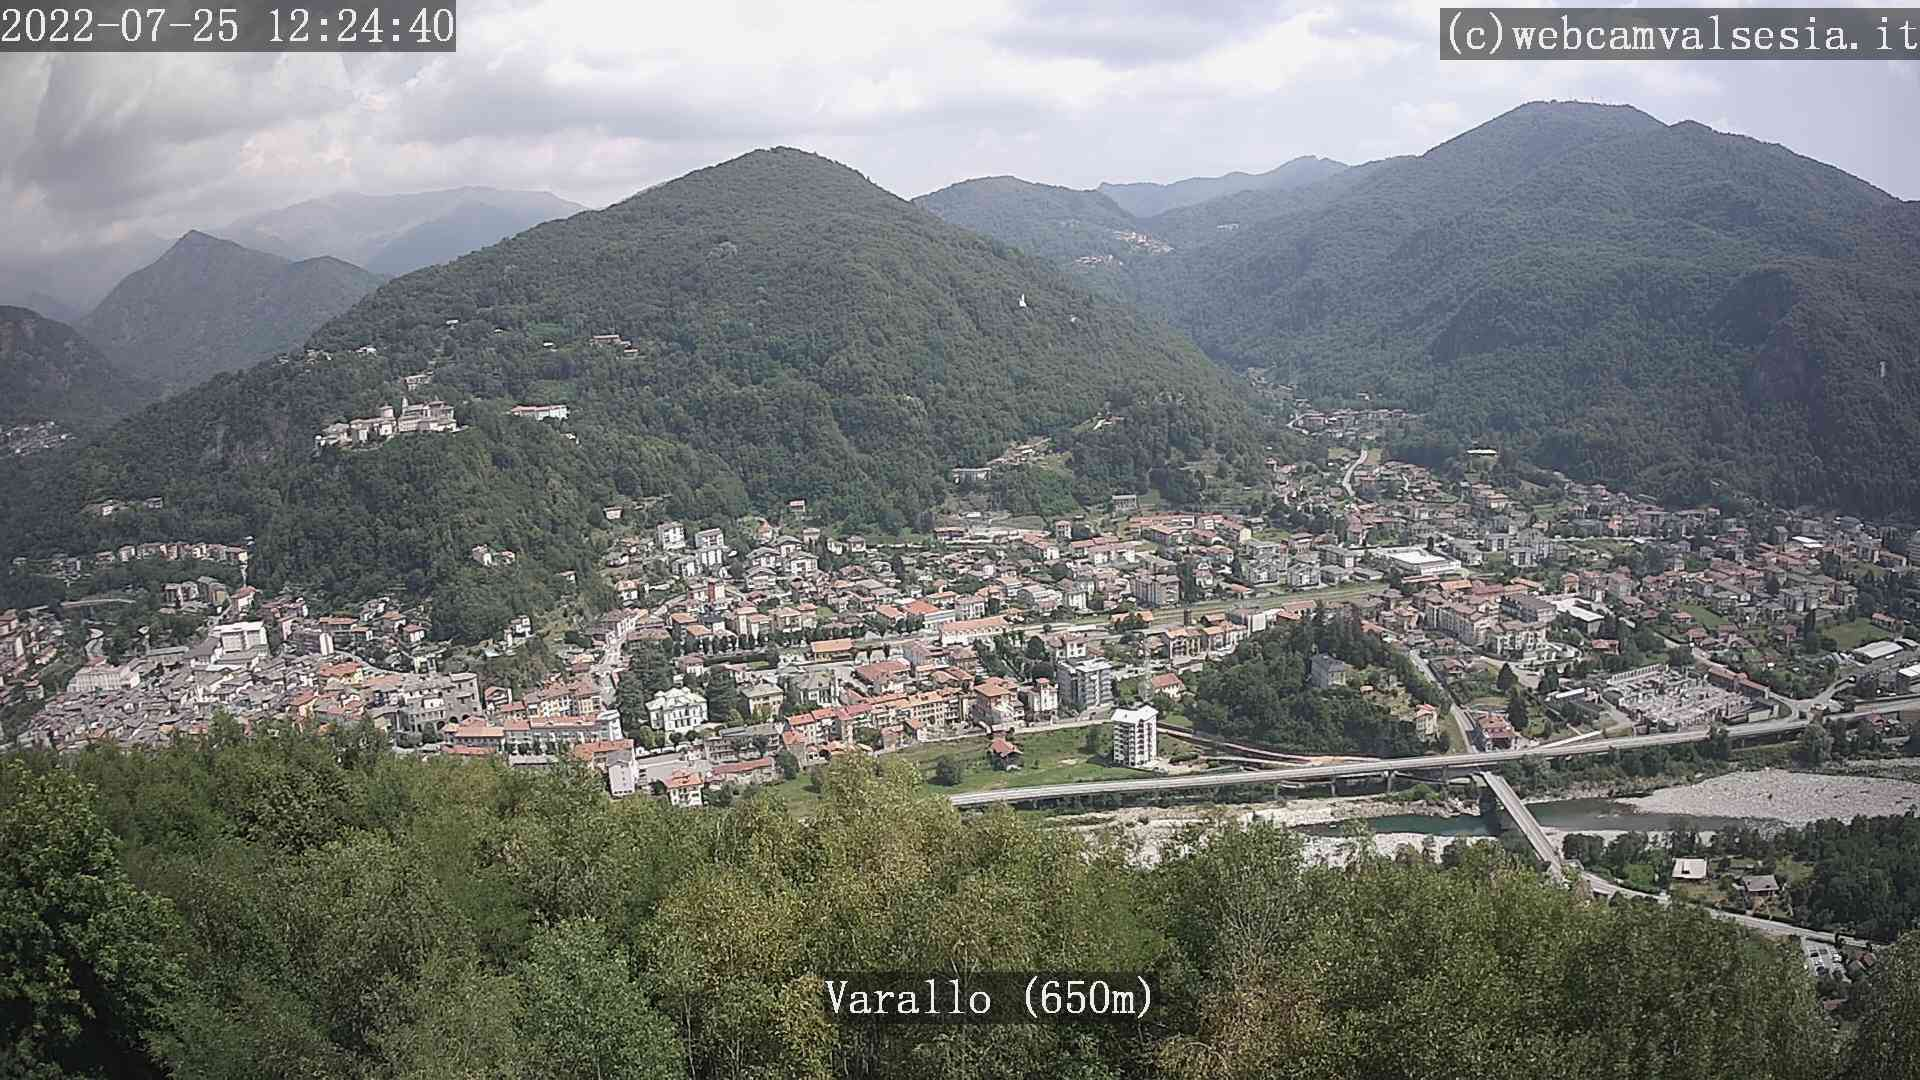 webcam_varallosesia